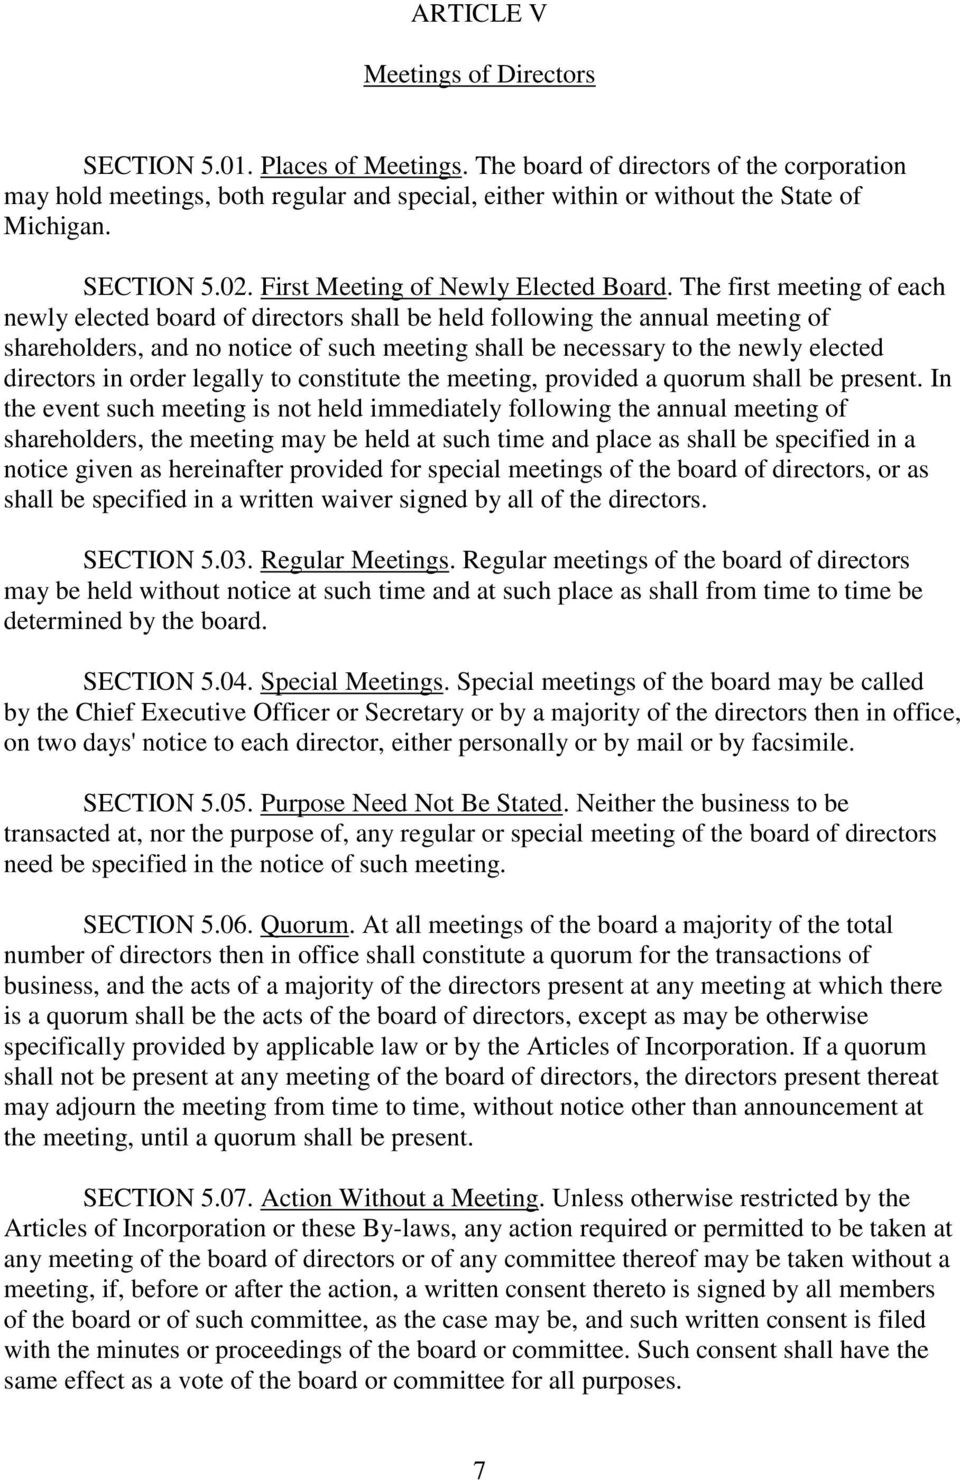 The first meeting of each newly elected board of directors shall be held following the annual meeting of shareholders, and no notice of such meeting shall be necessary to the newly elected directors